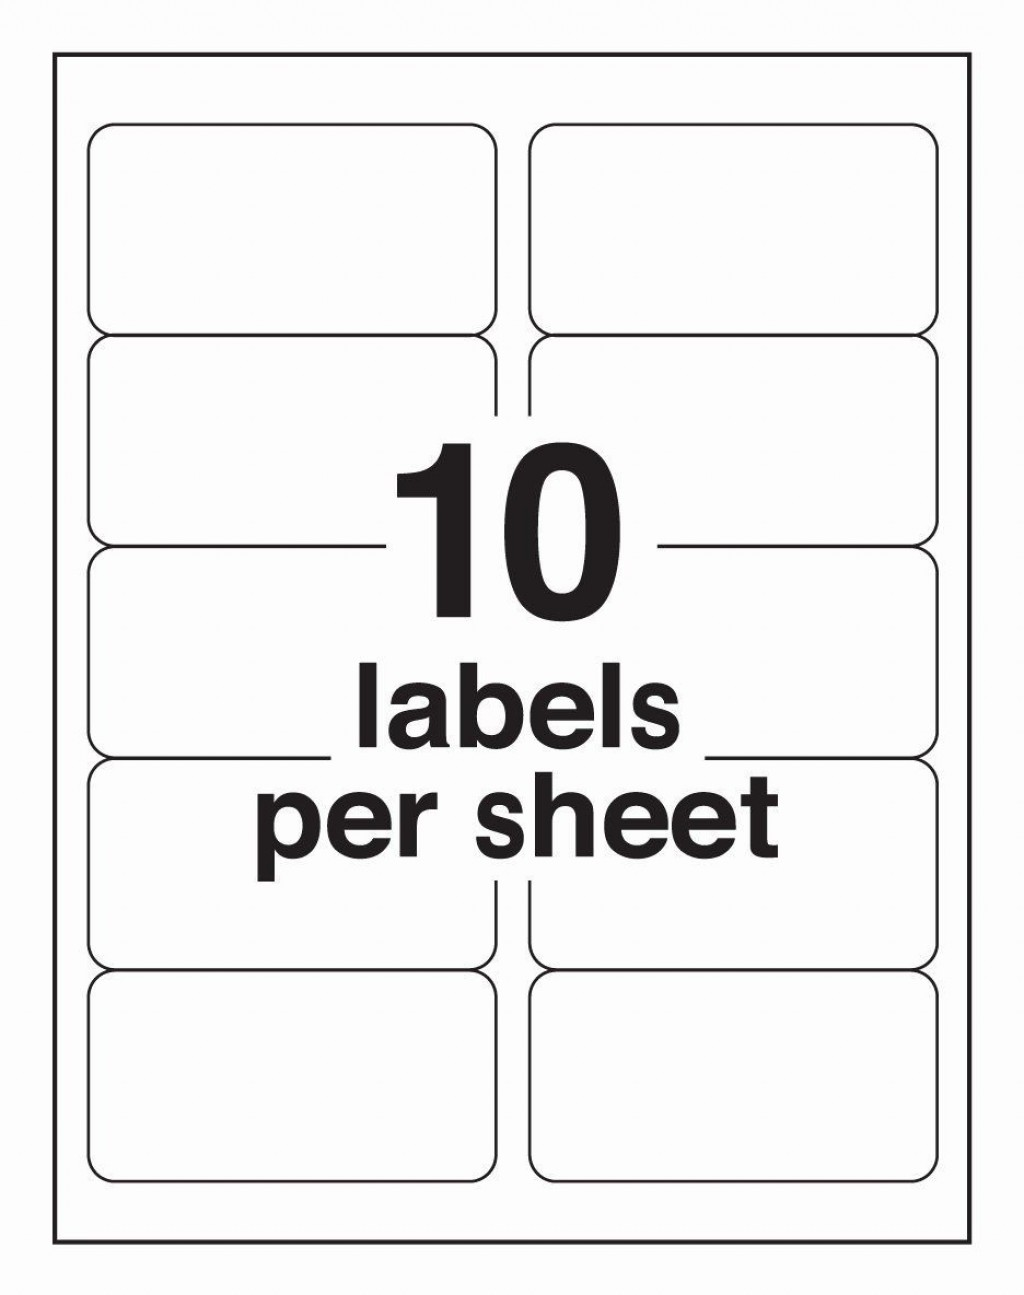 003 Striking Free Mail Label Template High Def  Printable Addres 1 X 2 5 8 For Word DownloadLarge